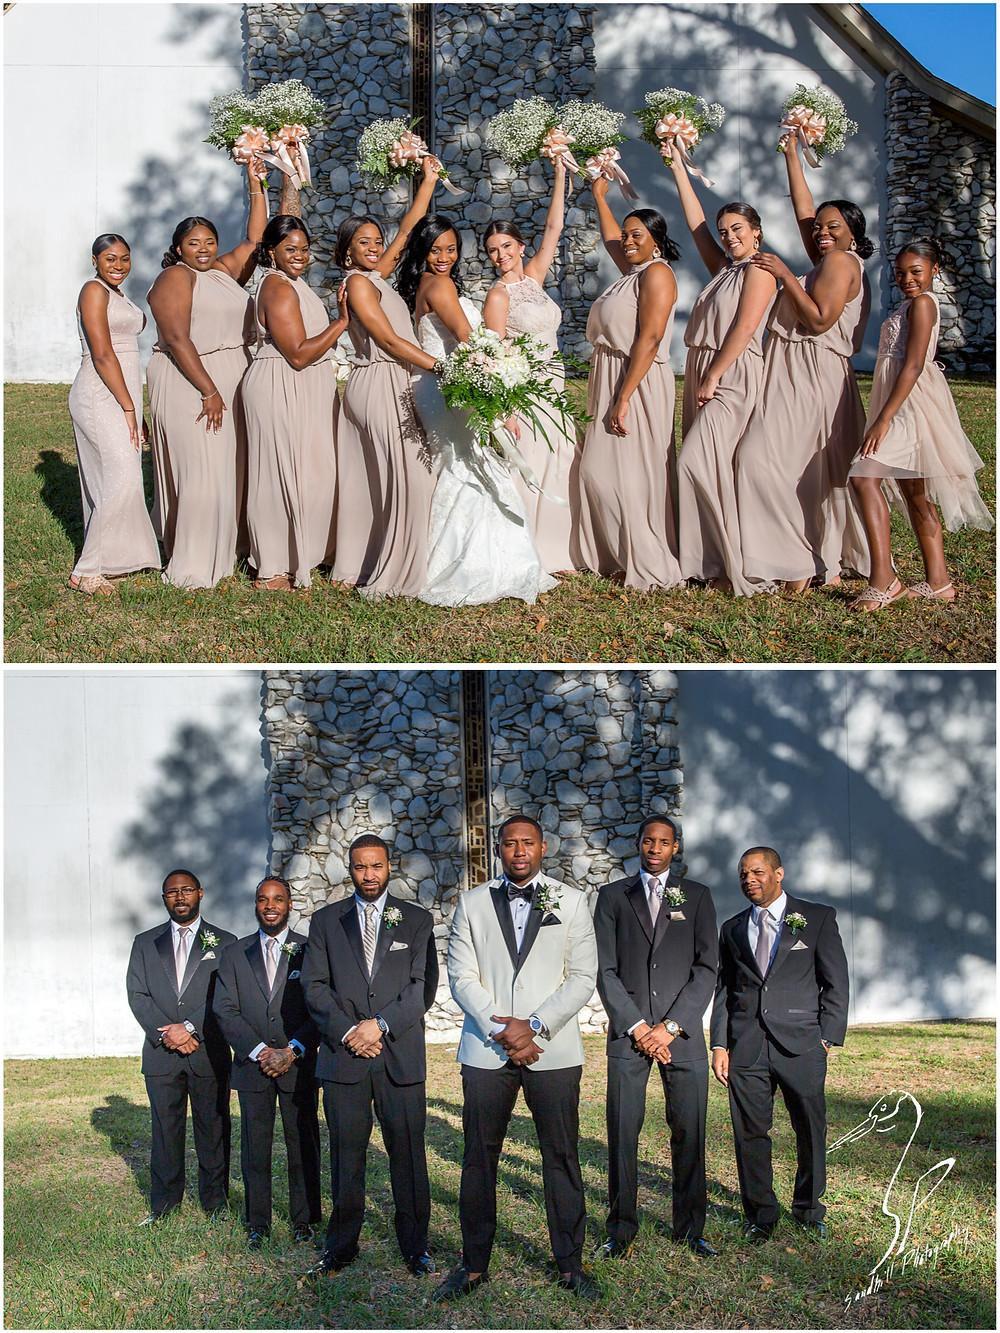 Bradenton Wedding Photographer, The bride with her bridesmaids and the groom with his groomsmen in front of United First Methodist Church of Seffner